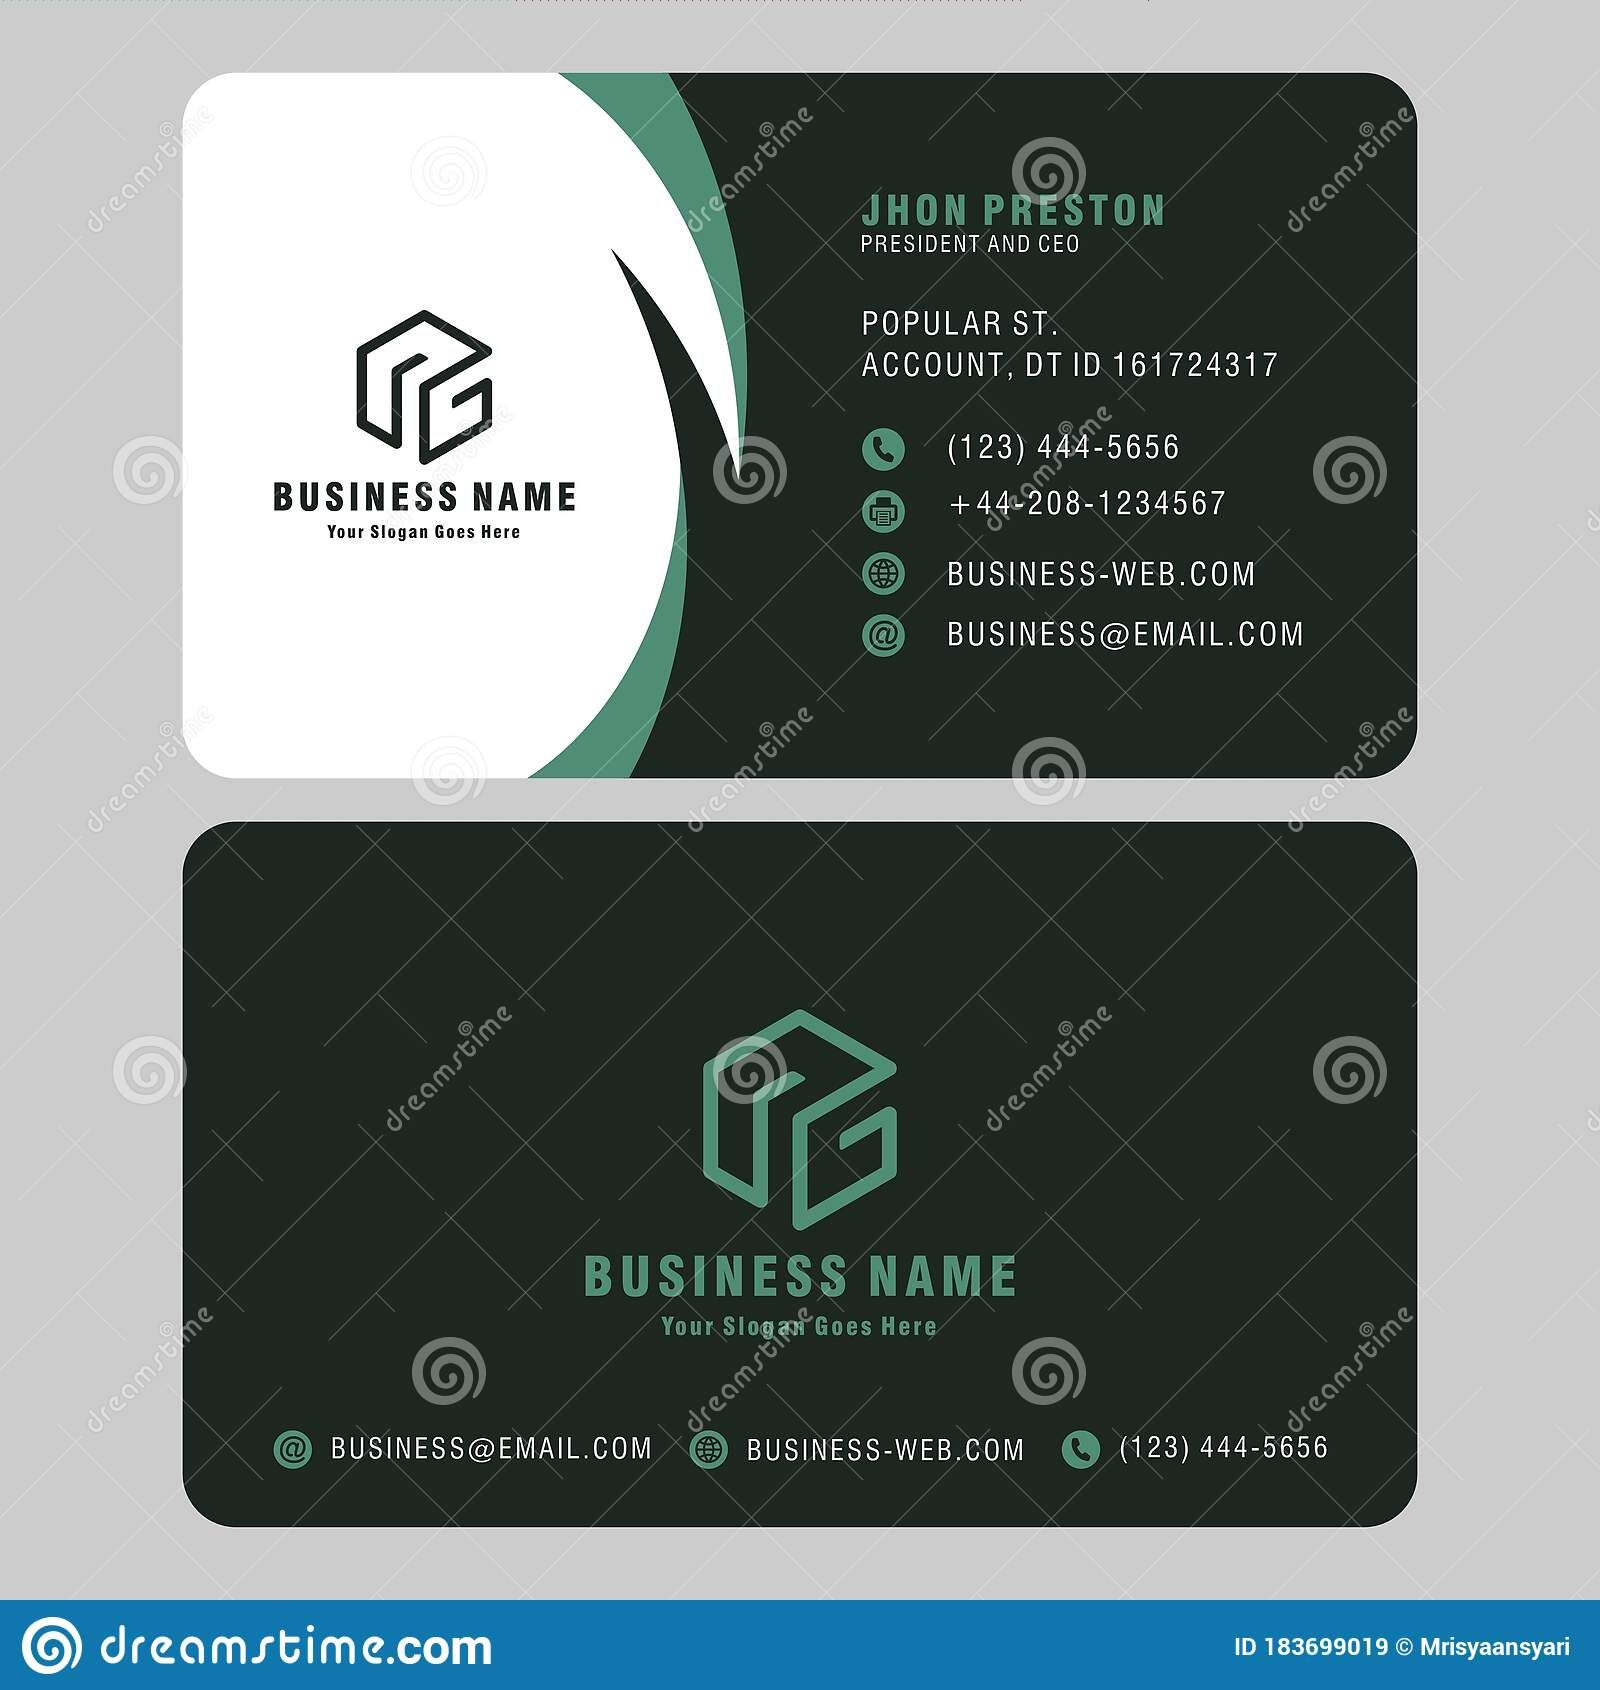 Pin By Ztoalphabet On Designs From Z To A Corporate Business Card Business Card Template Card Template